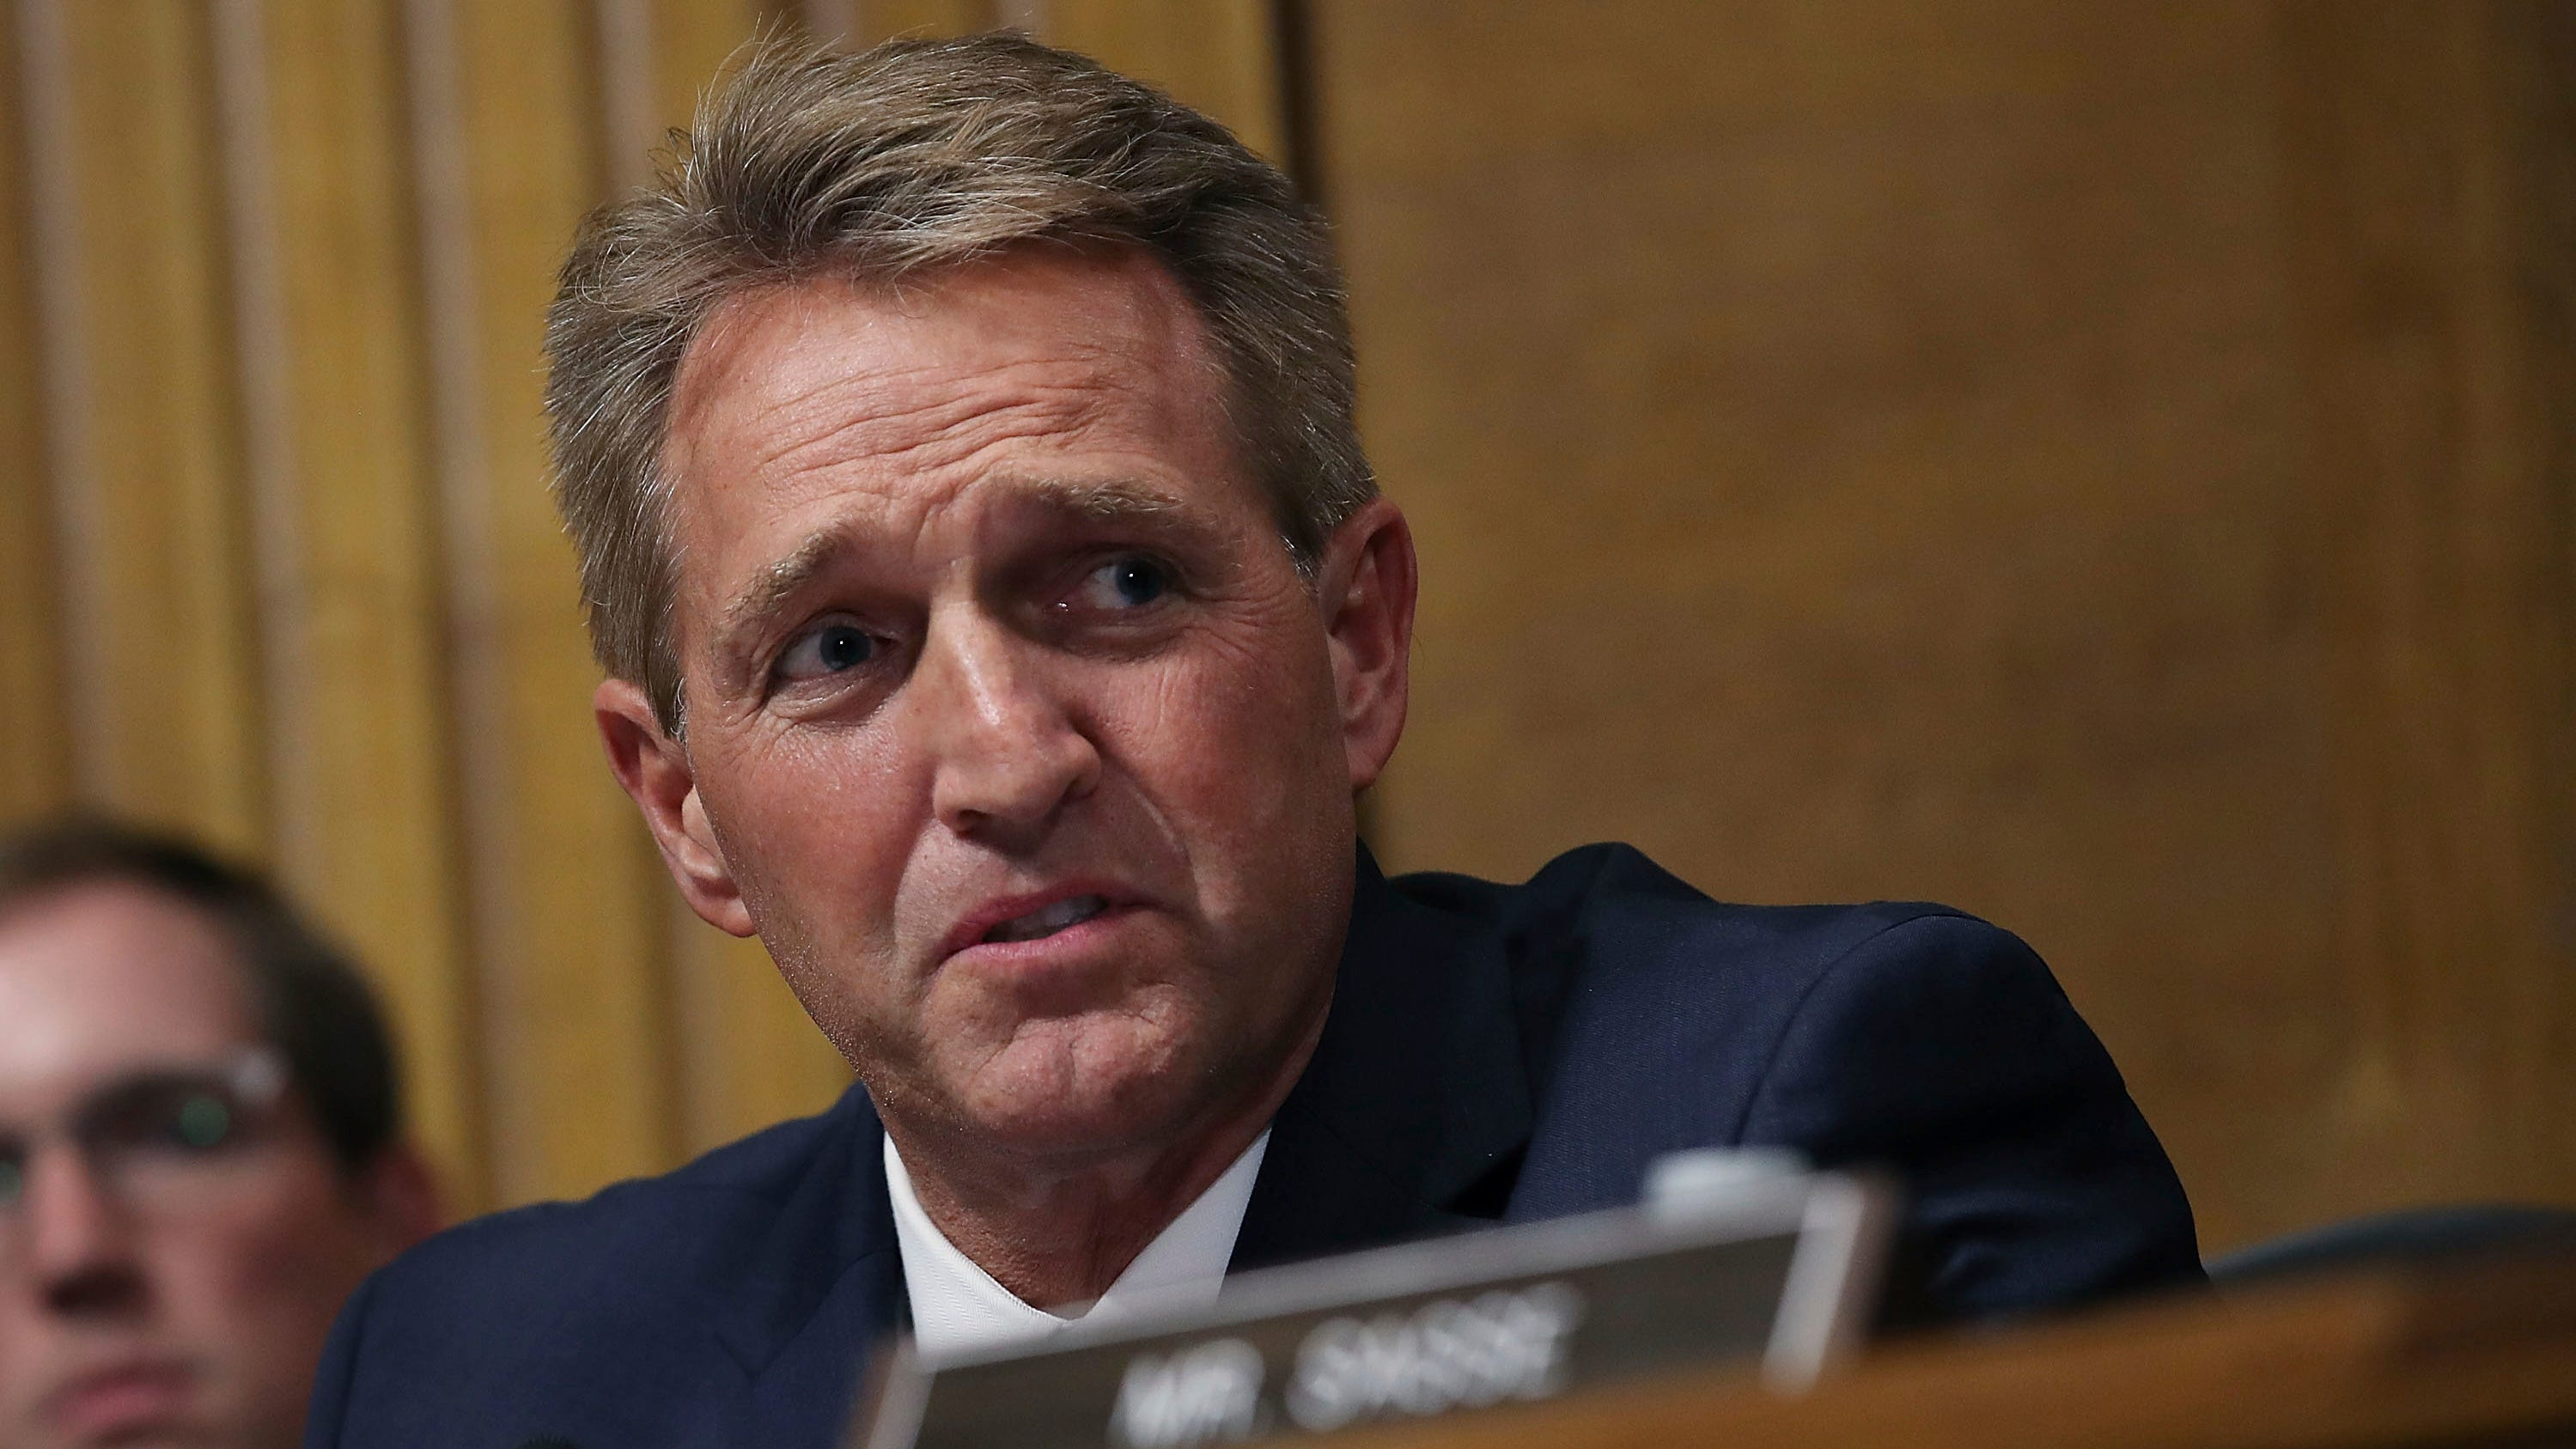 'He failed the moral test': Social media responds to Jeff Flake decision to back Kavanaugh